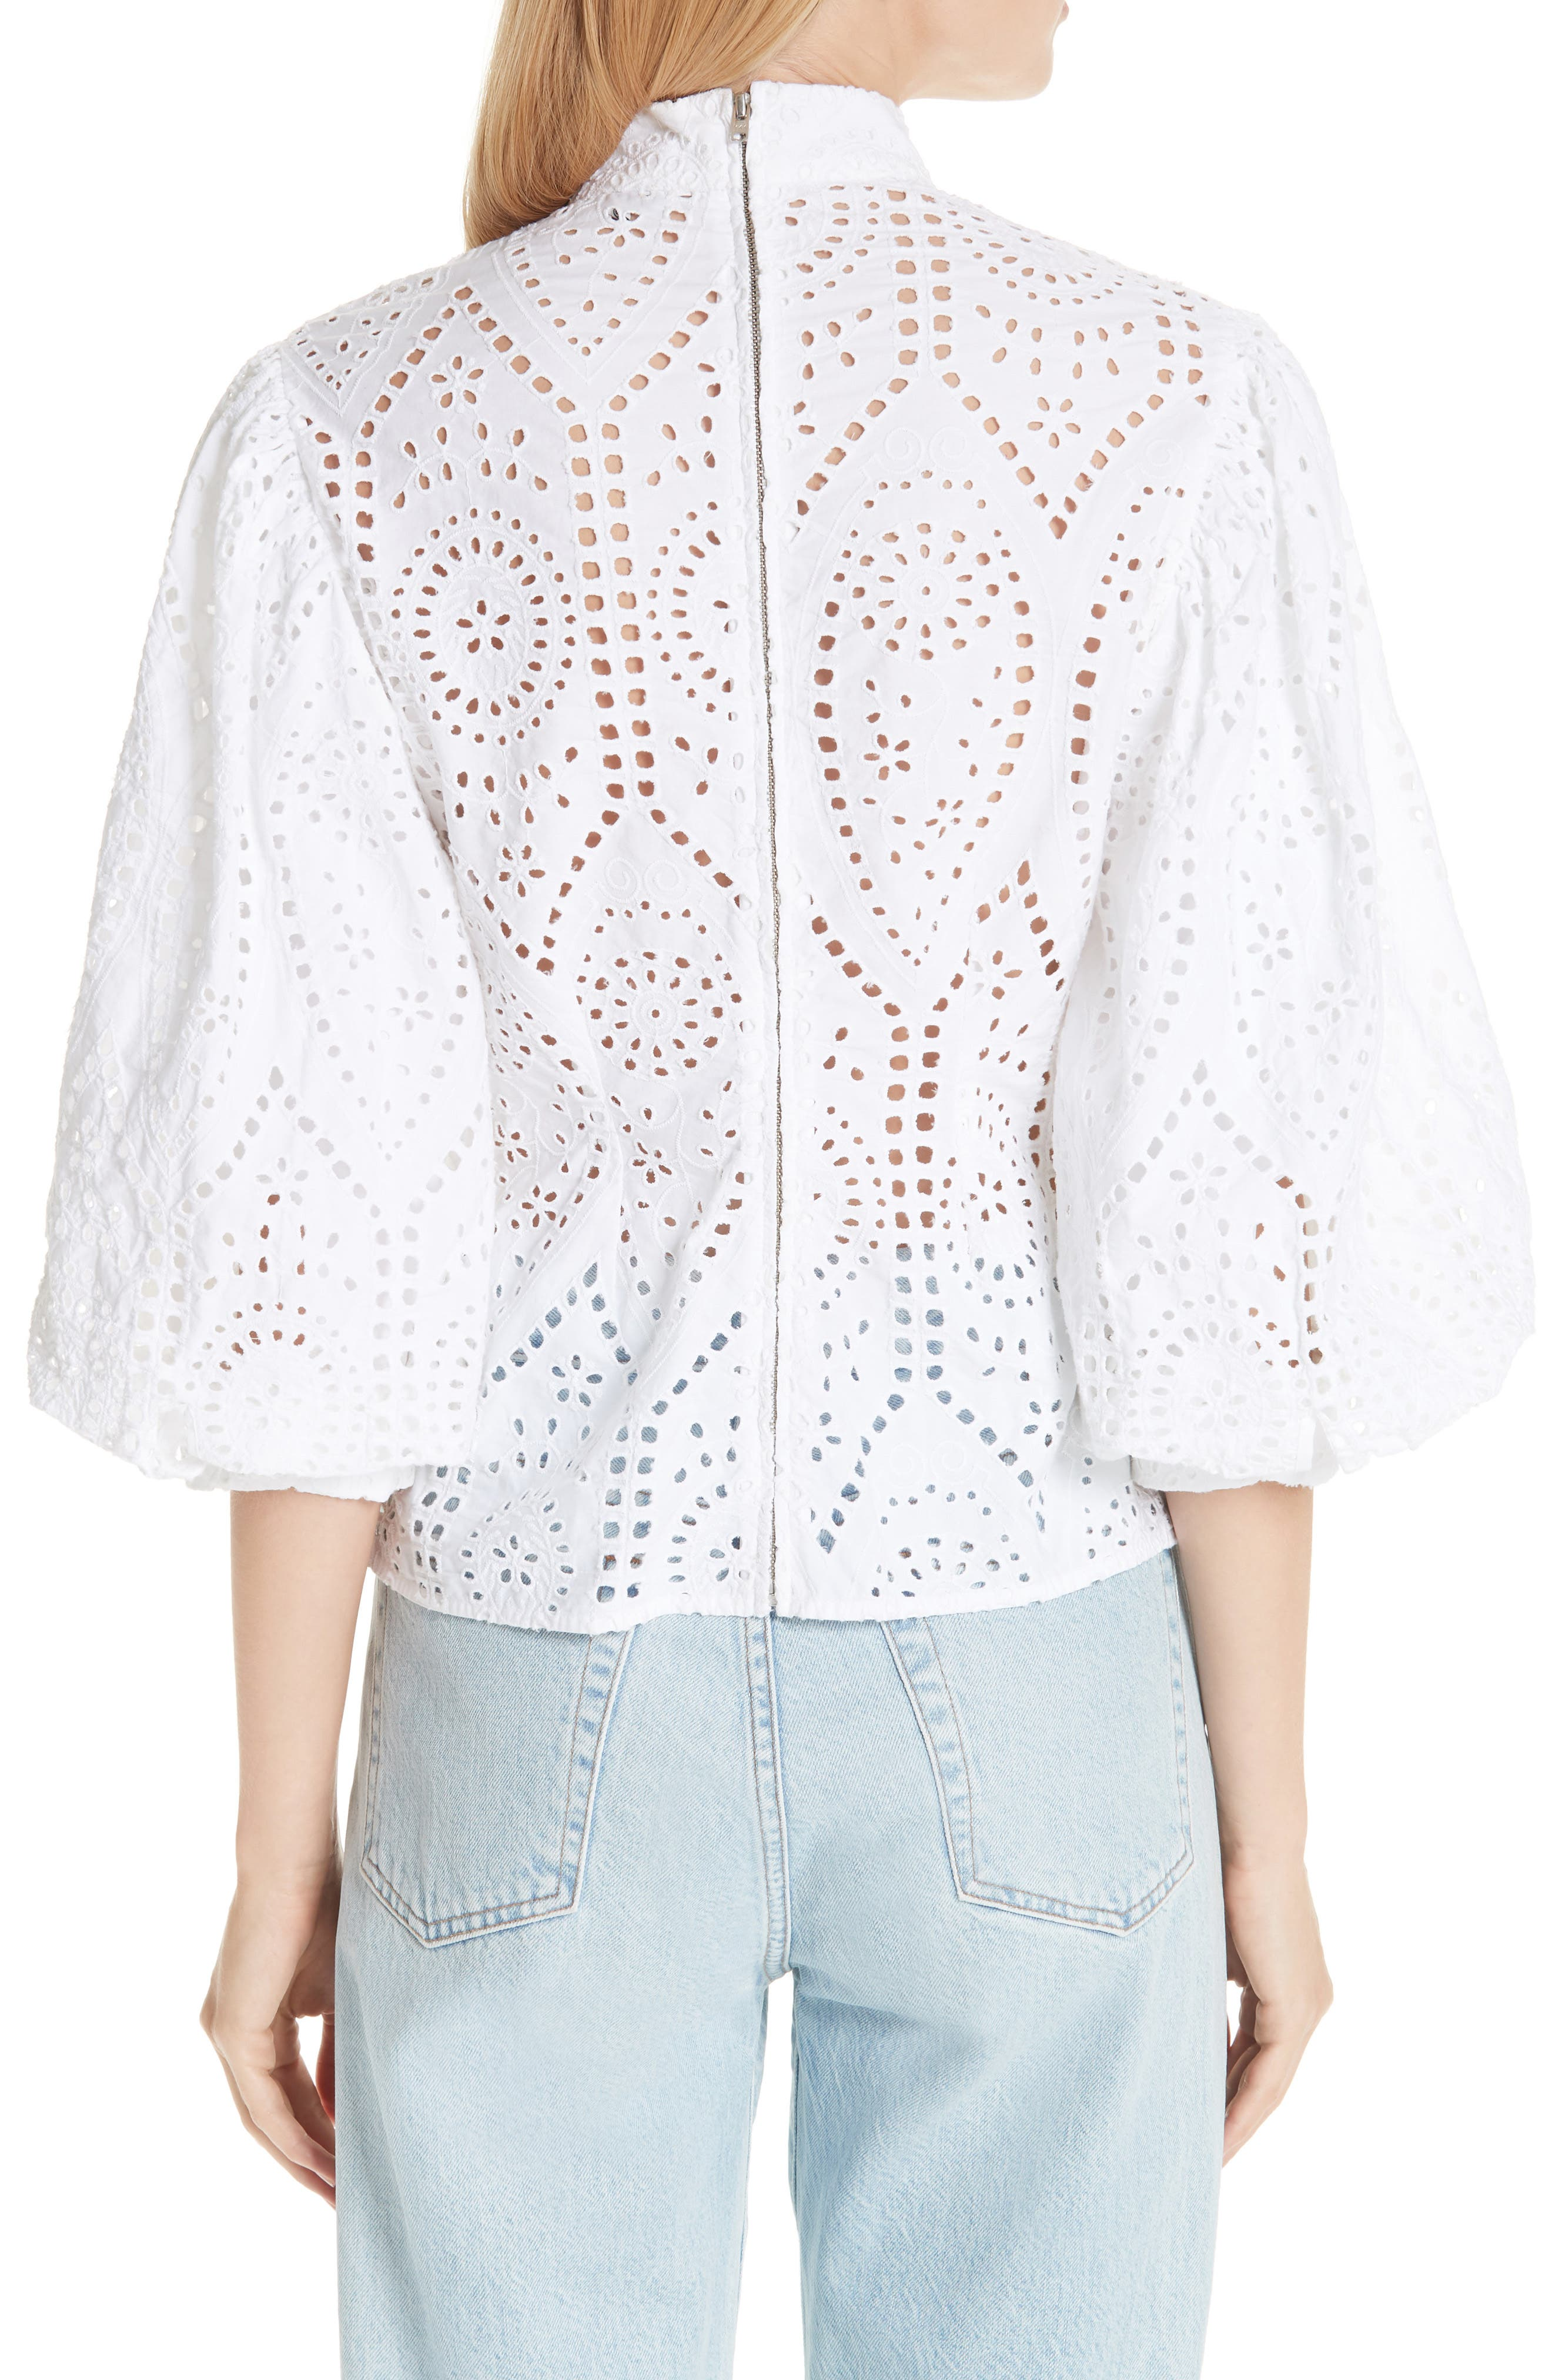 Broderie Anglaise Shirt,                             Alternate thumbnail 2, color,                             BRIGHT WHITE 151